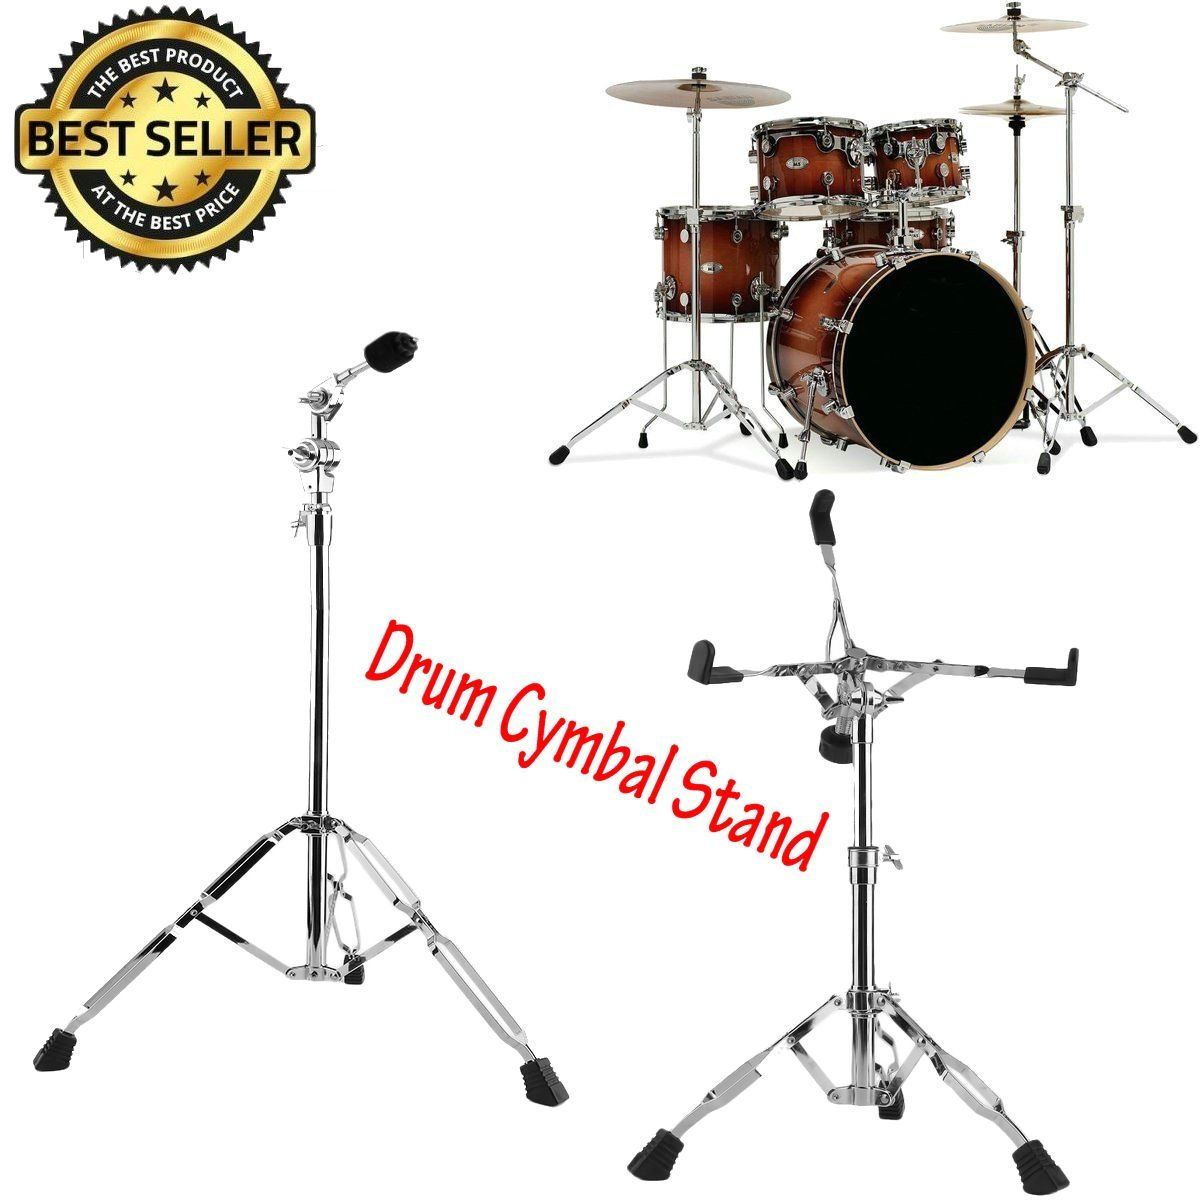 Boom Cymbal Stand - Lightweight, Double-Braced